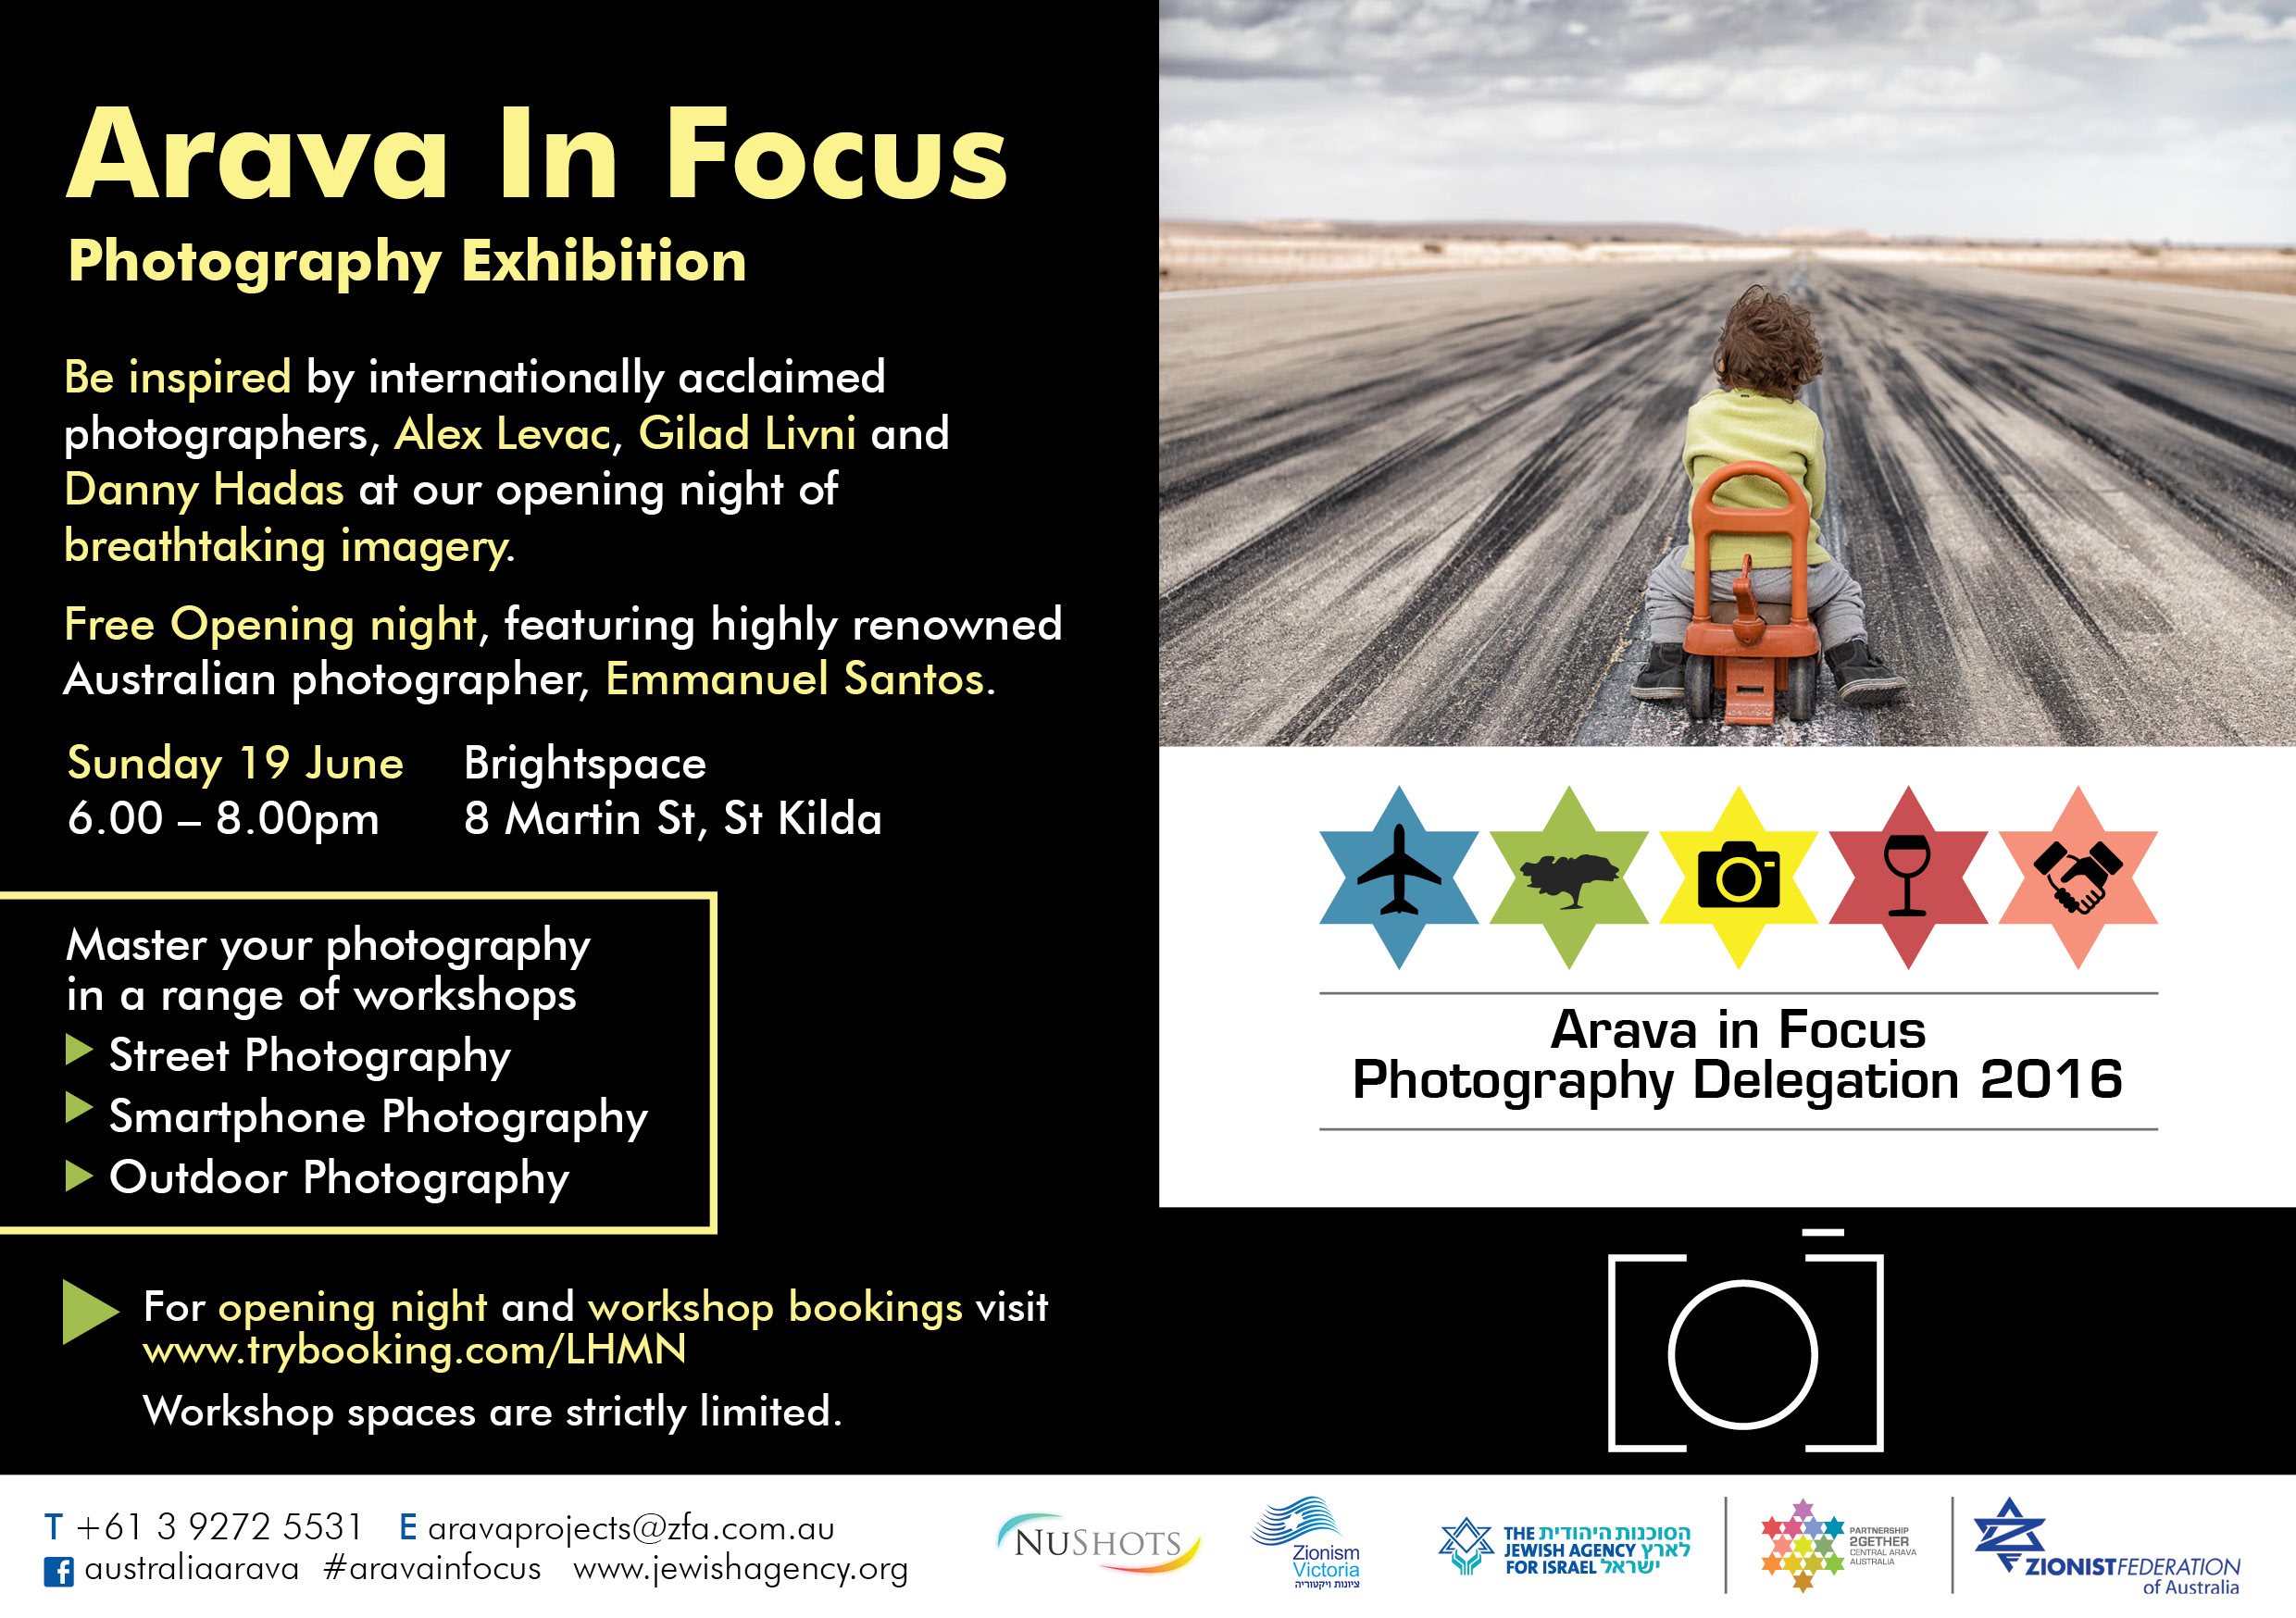 Arava in Focus_Opening night and workshops